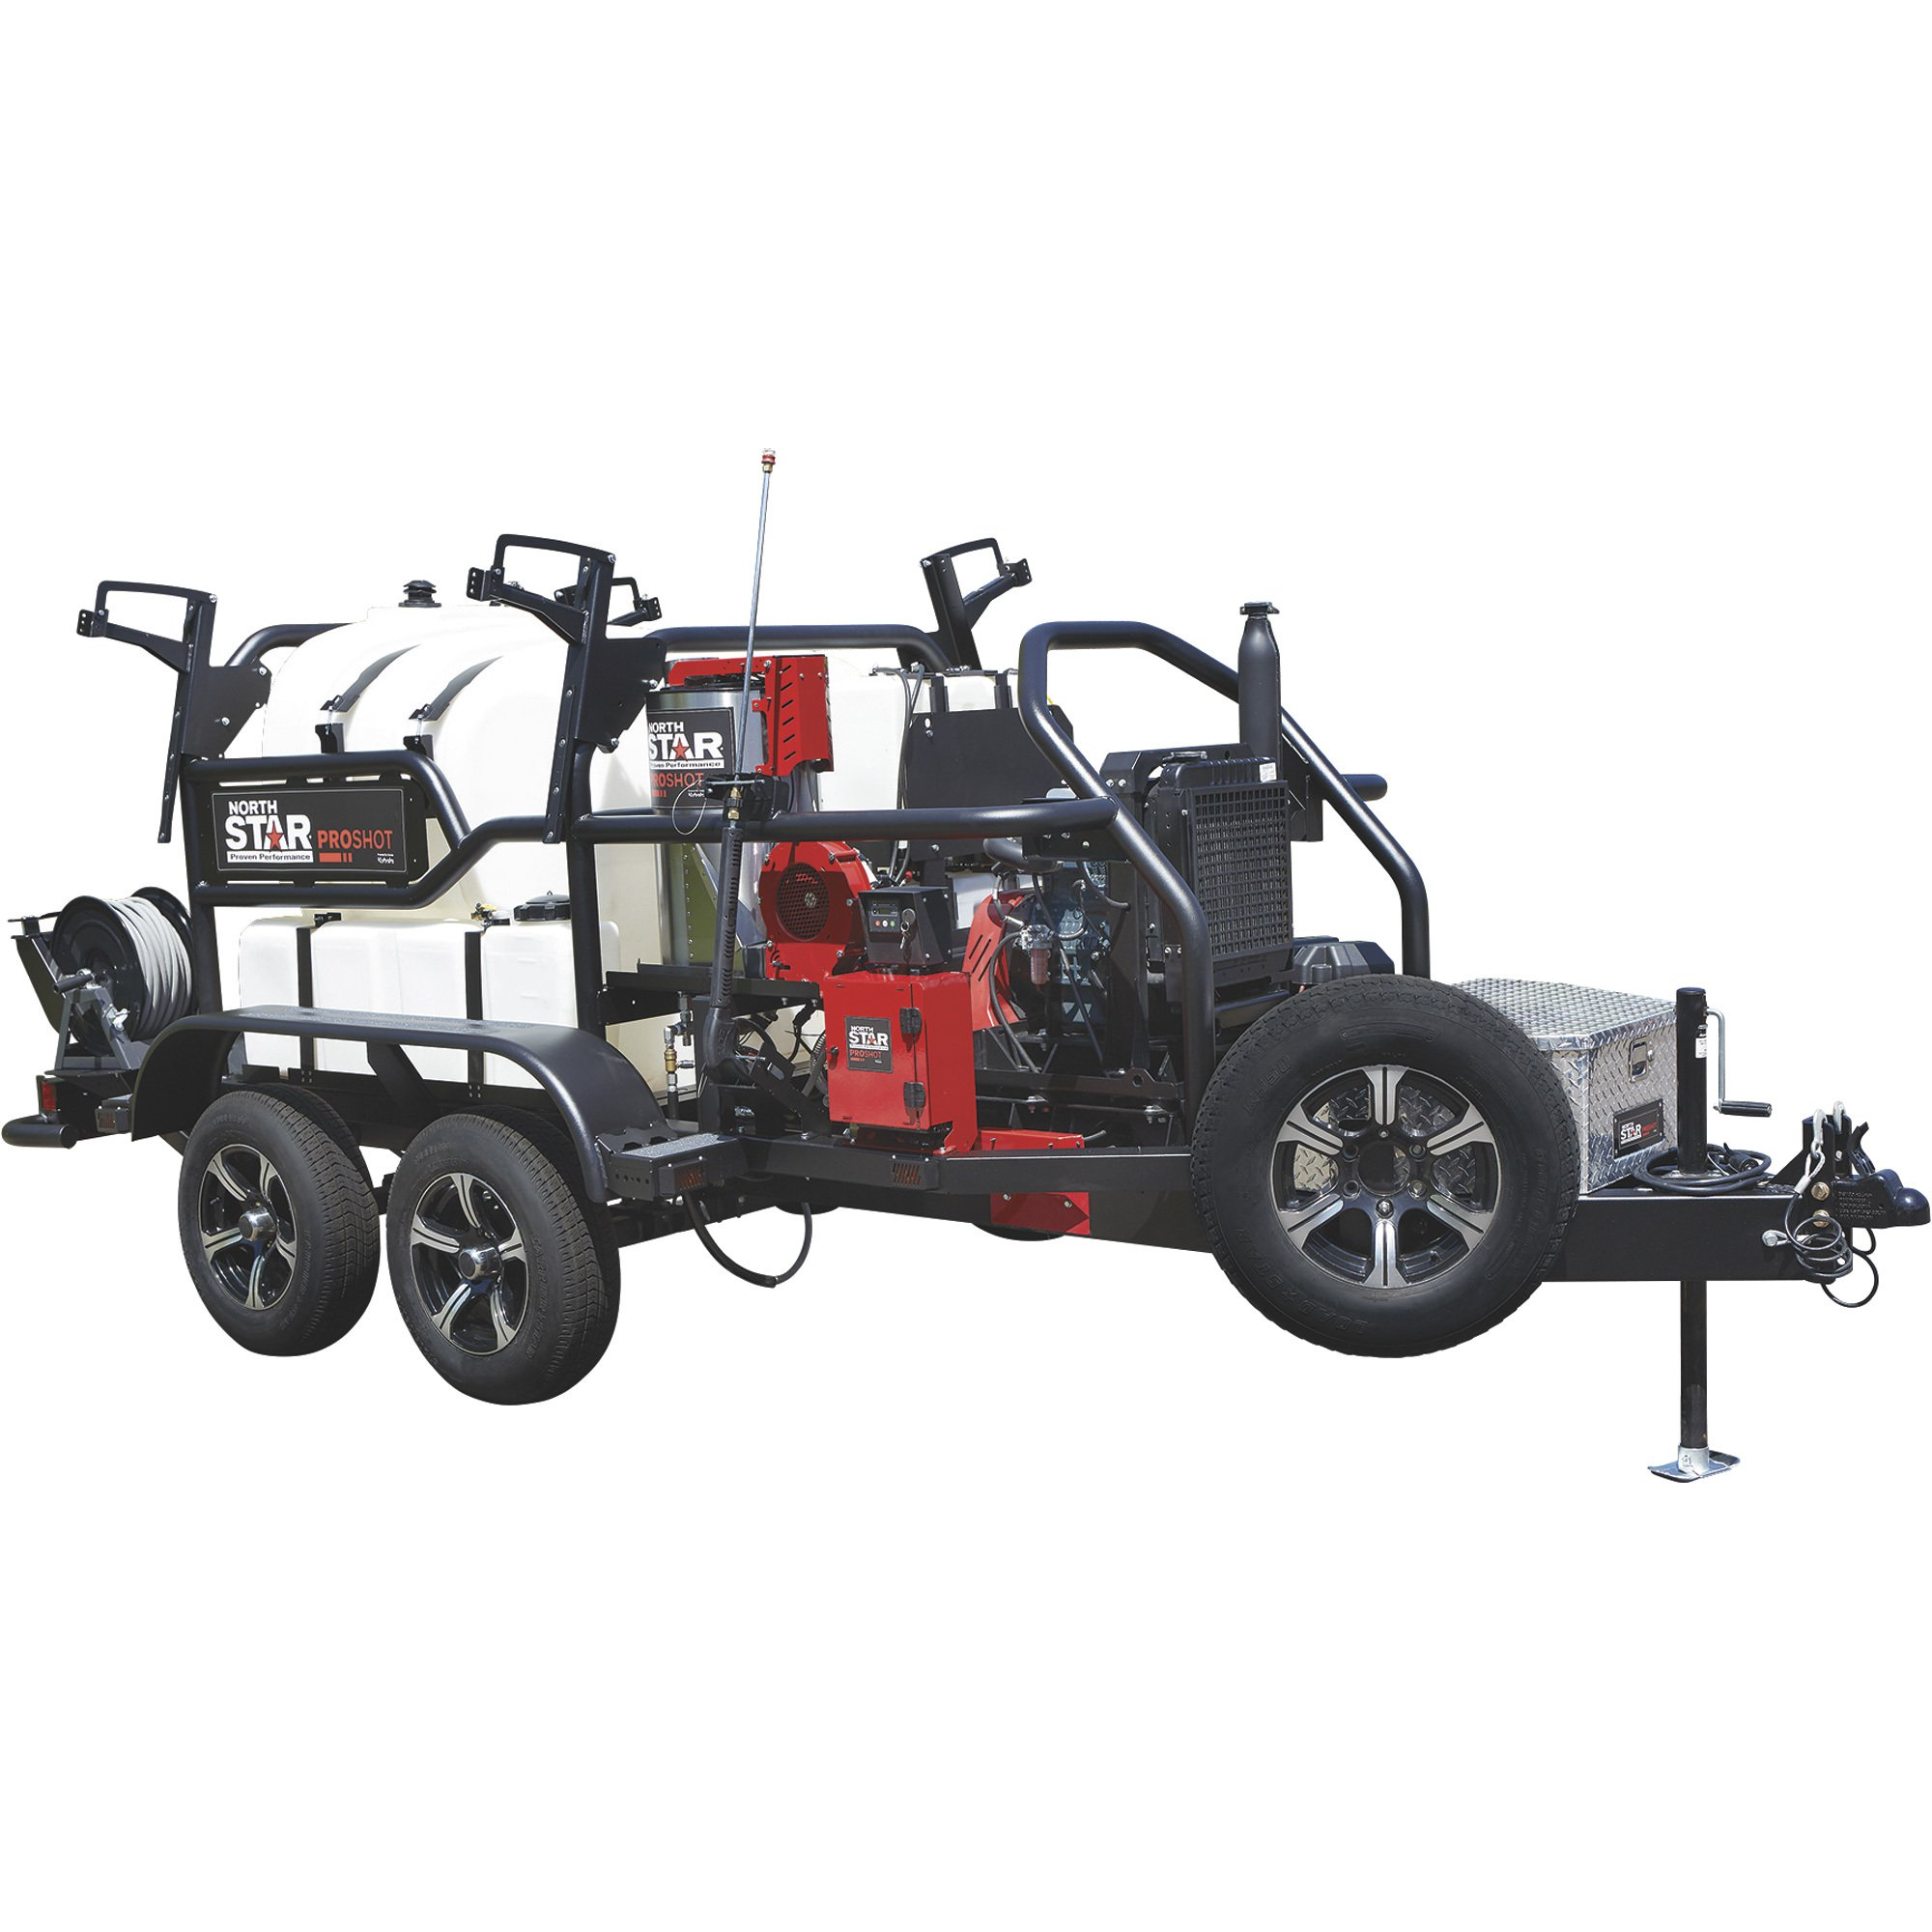 NorthStar 157569 ProShot Hot Water Commercial Pressure Washer Trailer — 4000 PSI, 5.5 GPM, Kubota Diesel Engine , 400 Gal. Water Tank — FREE SHIPPING